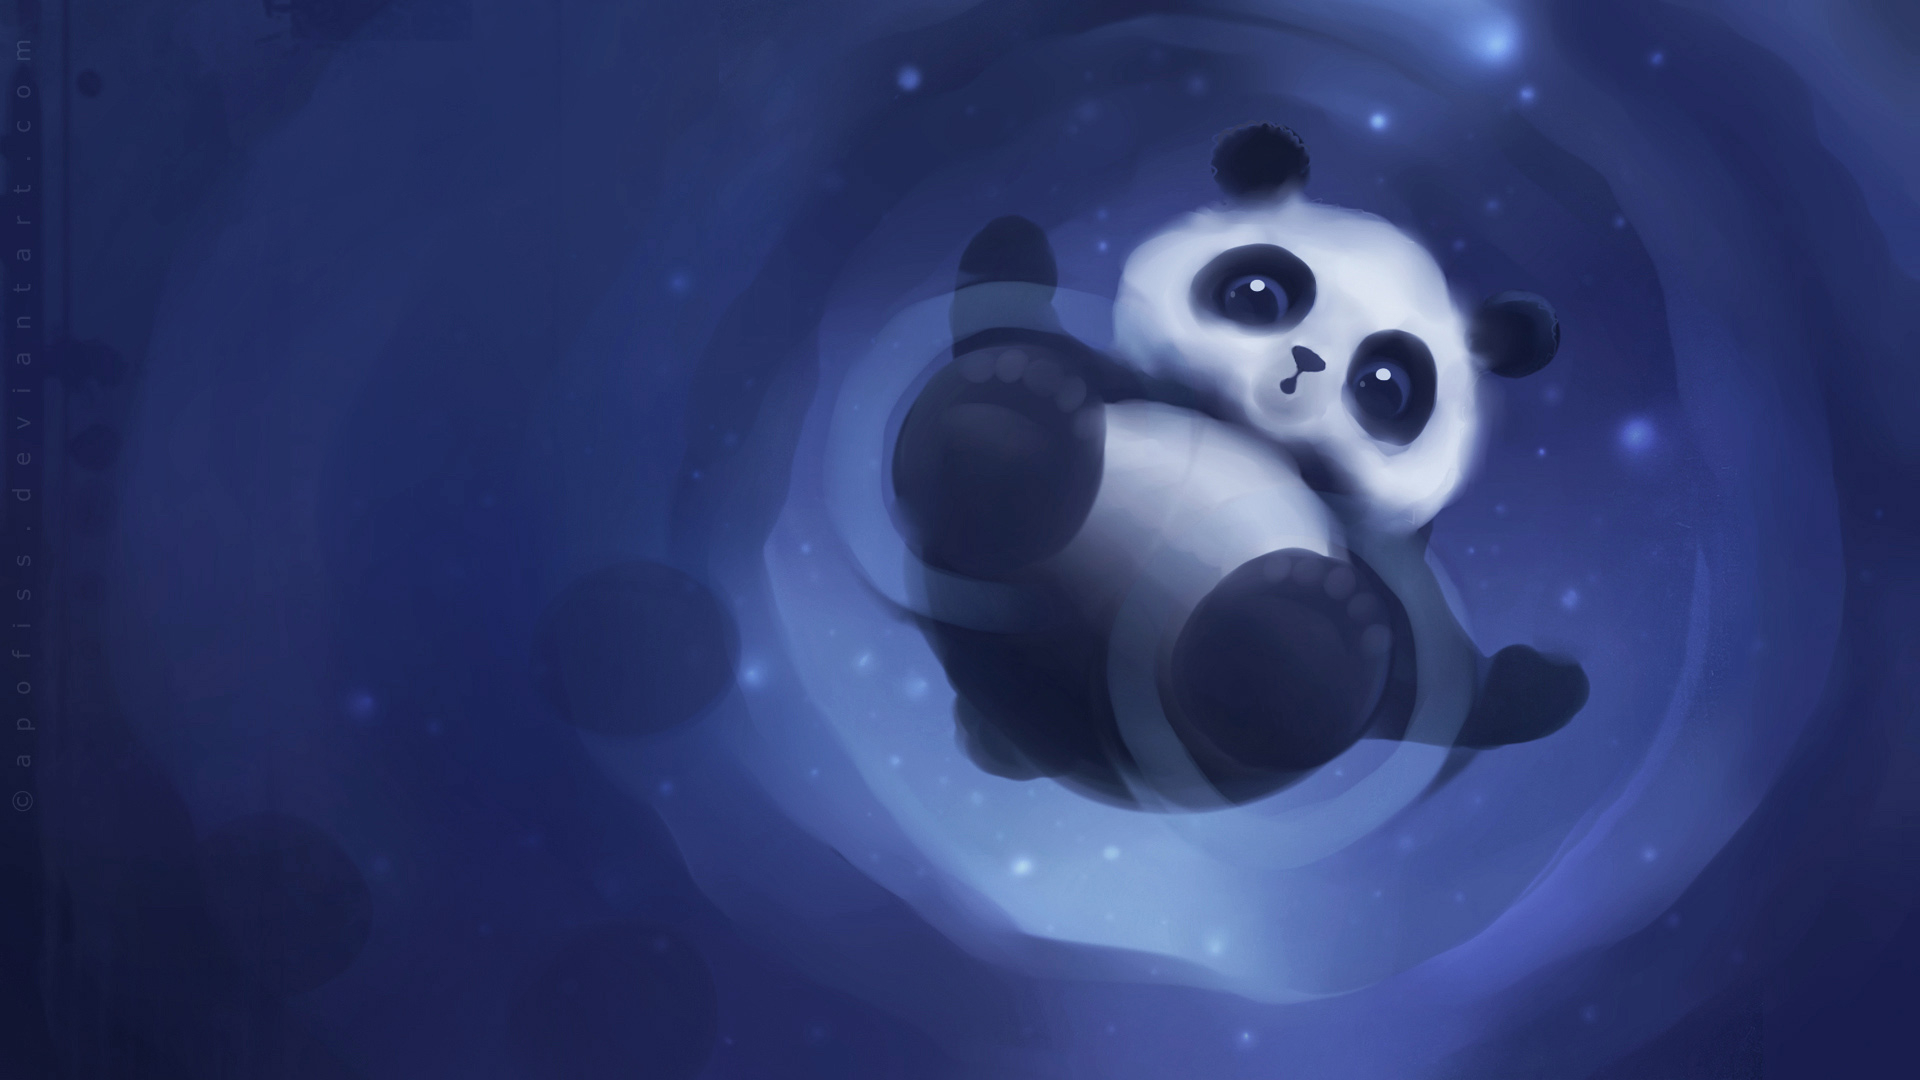 Panda Paper for 1920 x 1080 HDTV 1080p resolution